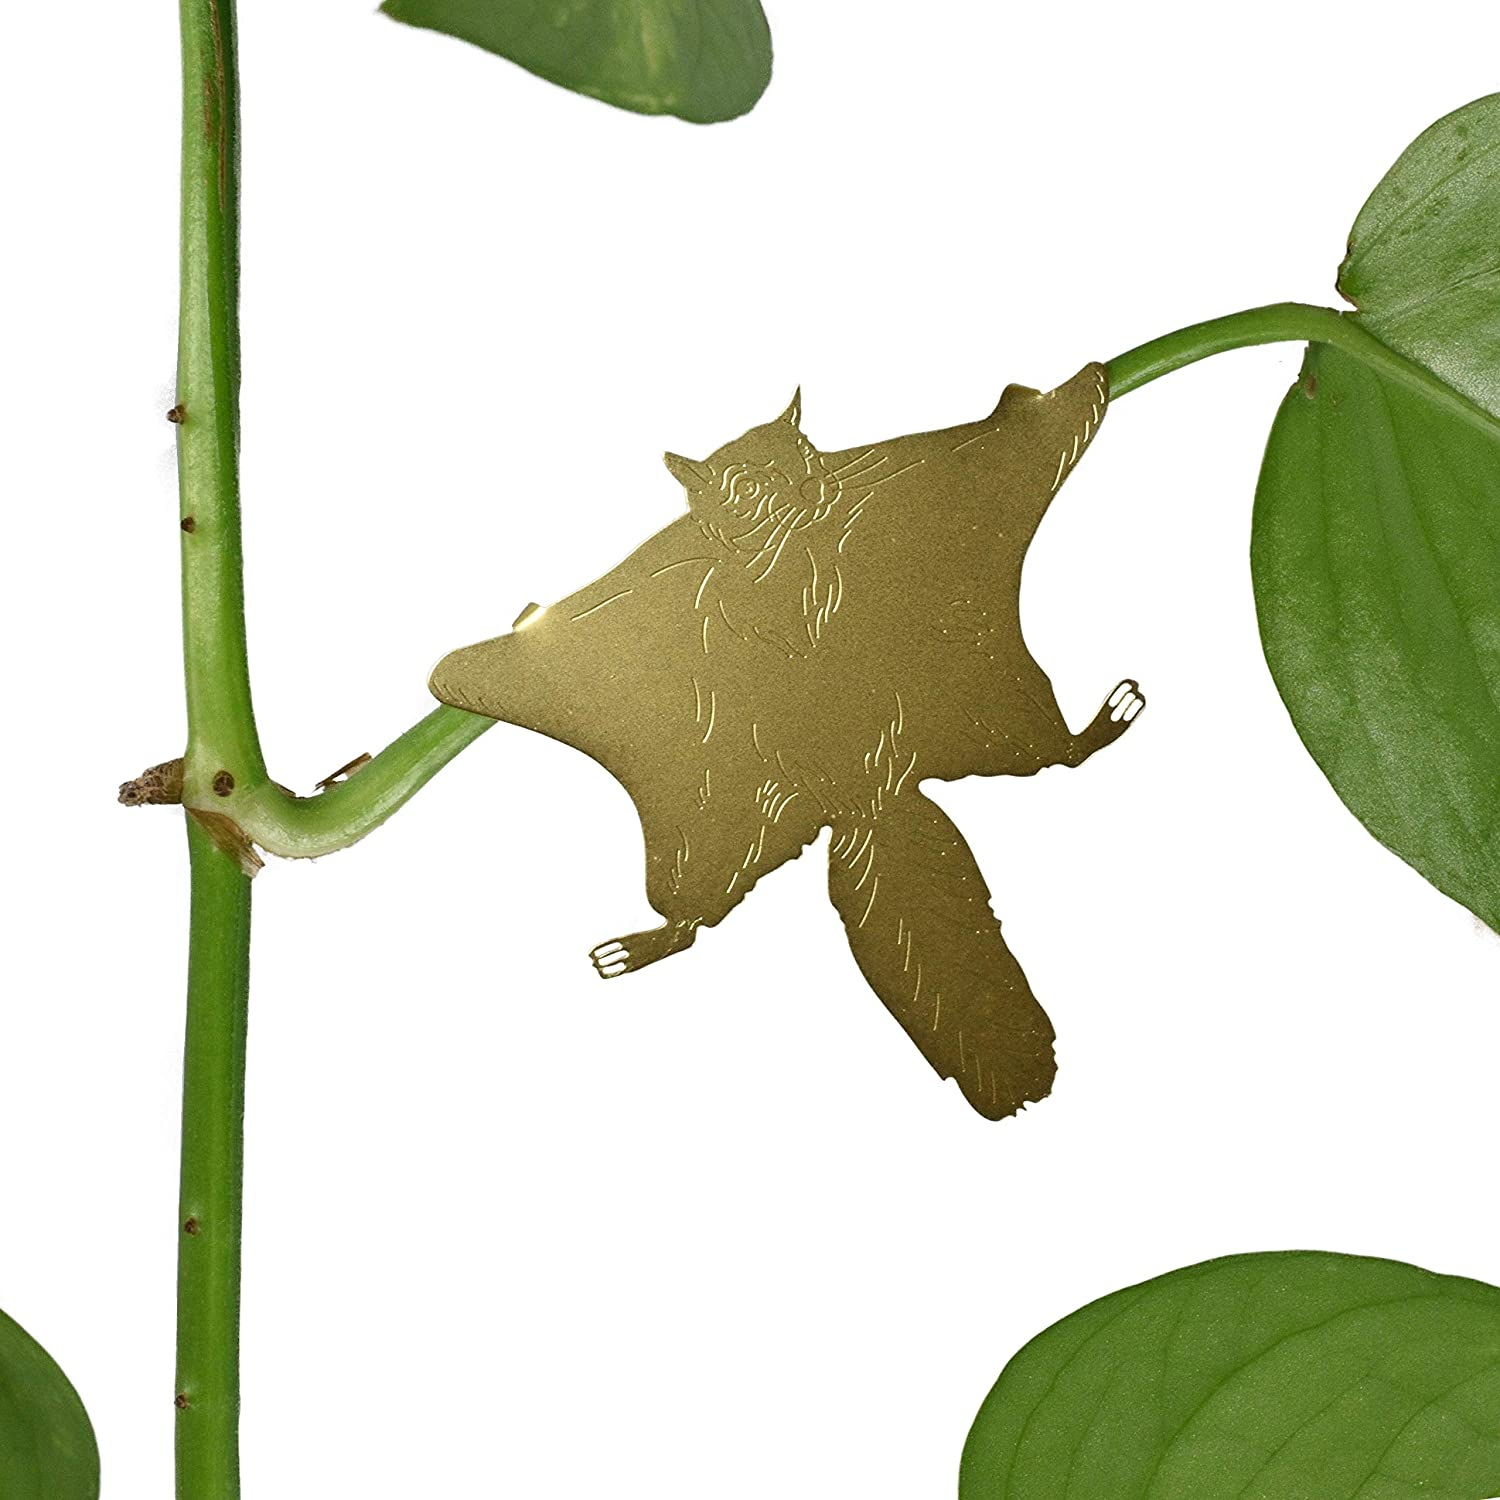 USWire Brass Animal Plant Hanger Variety 6 Pack Decoration for Plants